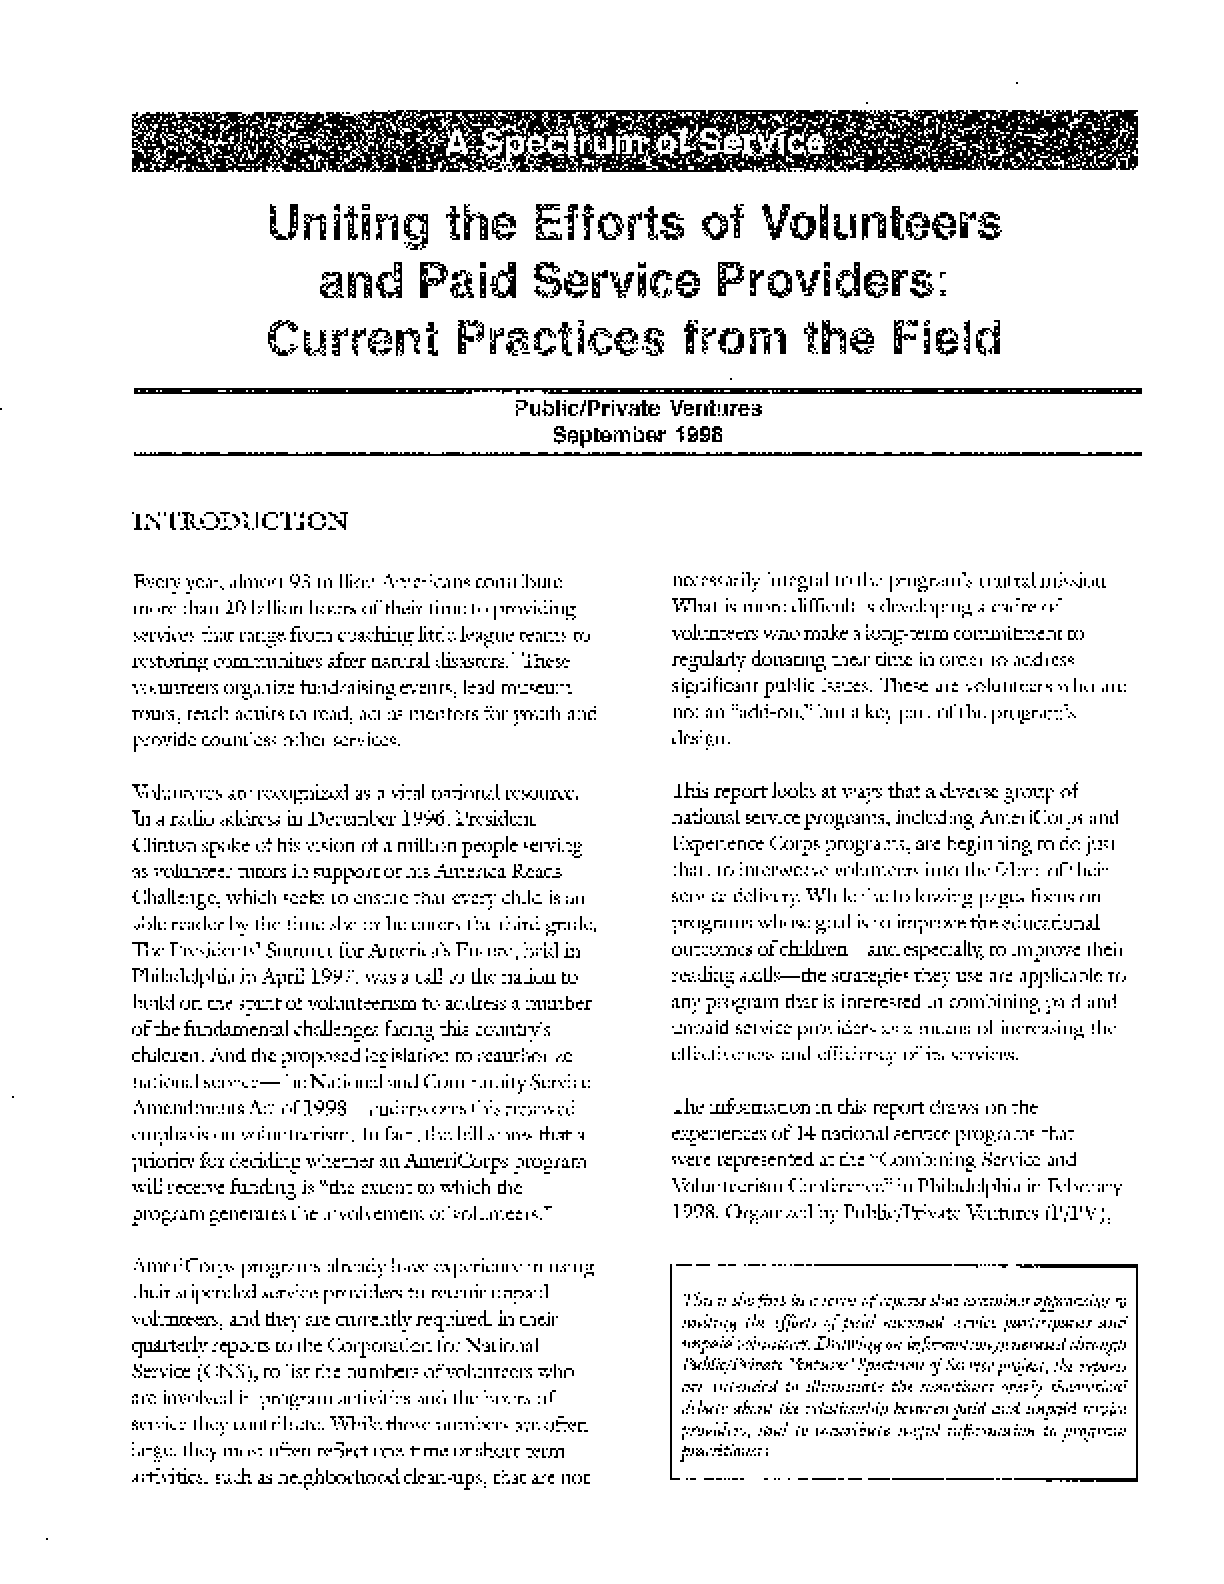 A Spectrum of Service: Uniting the Efforts of Volunteers and Paid Service Providers: Current Practices from the Field